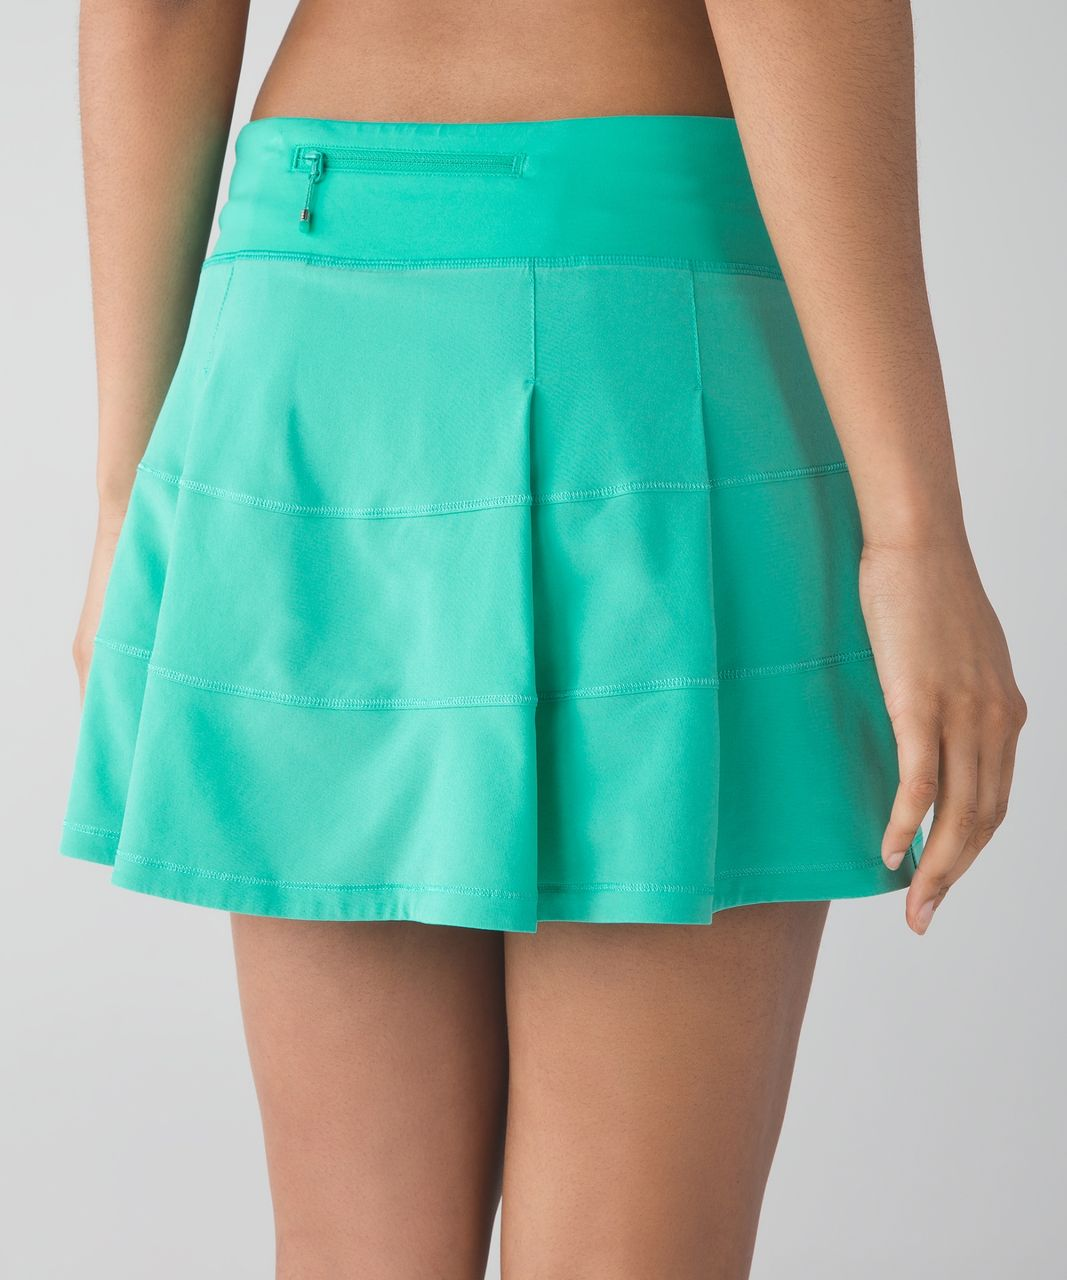 Lululemon Pace Rival Skirt II (Tall) - Bali Breeze